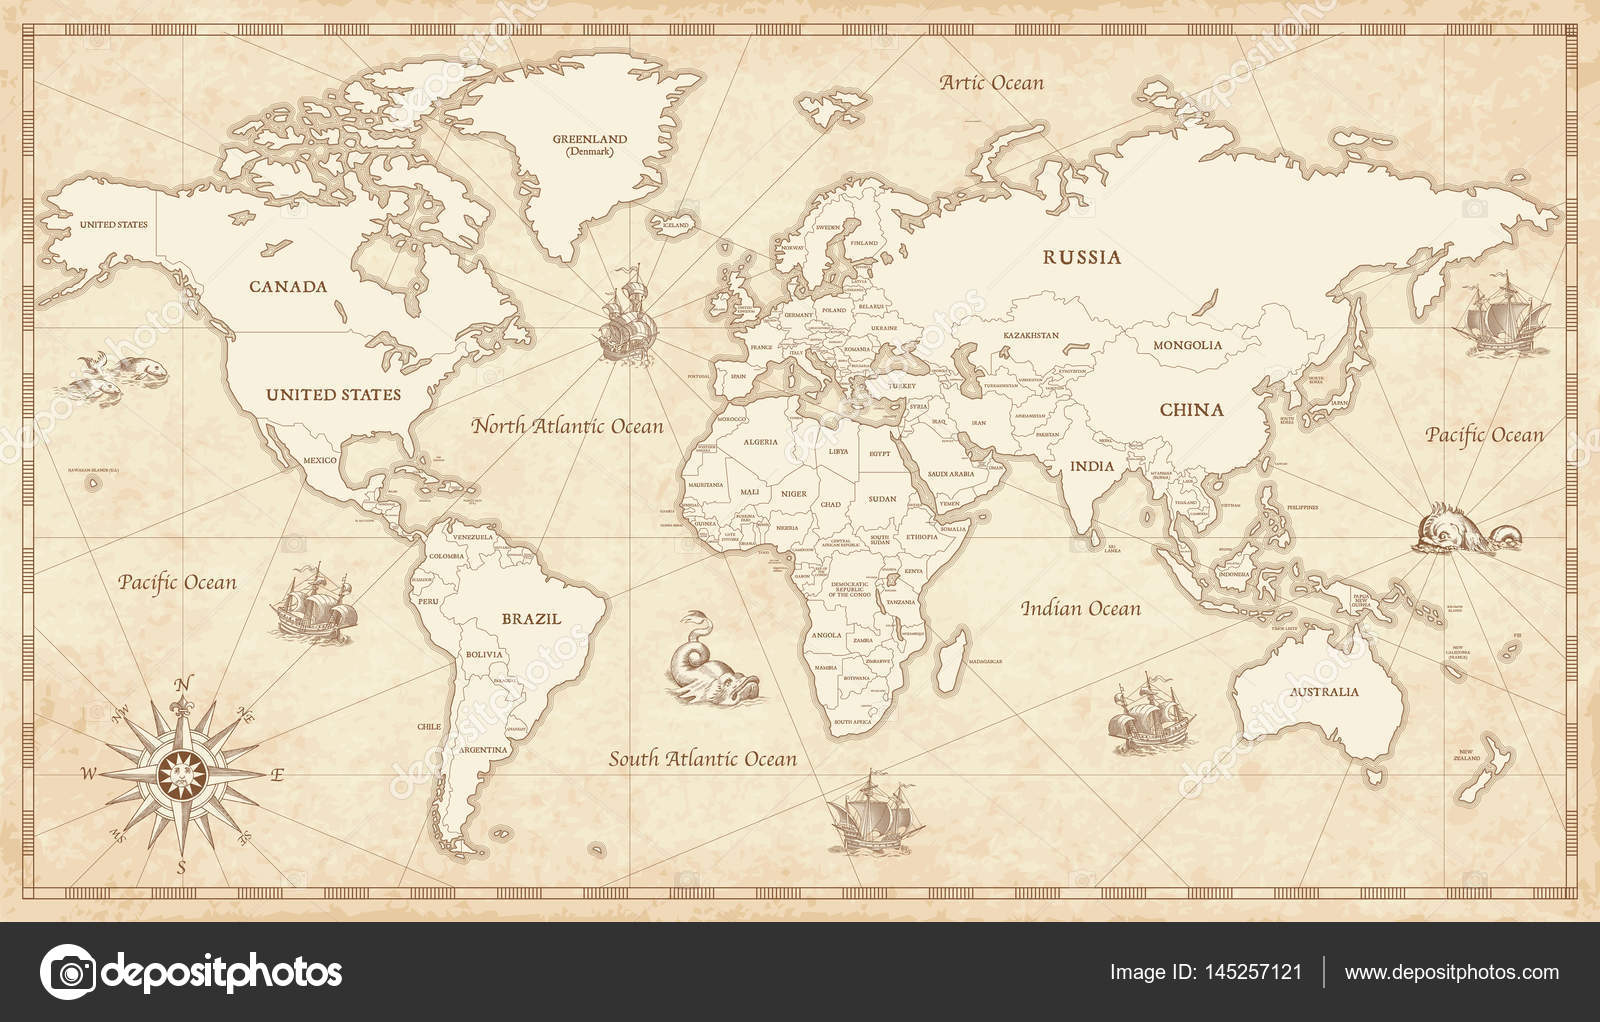 Vintage illustrated world map stock vector pingebat 145257121 great detail illustration of the world map in vintage style with all countries boundaries and names on a old parchment background vector by pingebat gumiabroncs Gallery